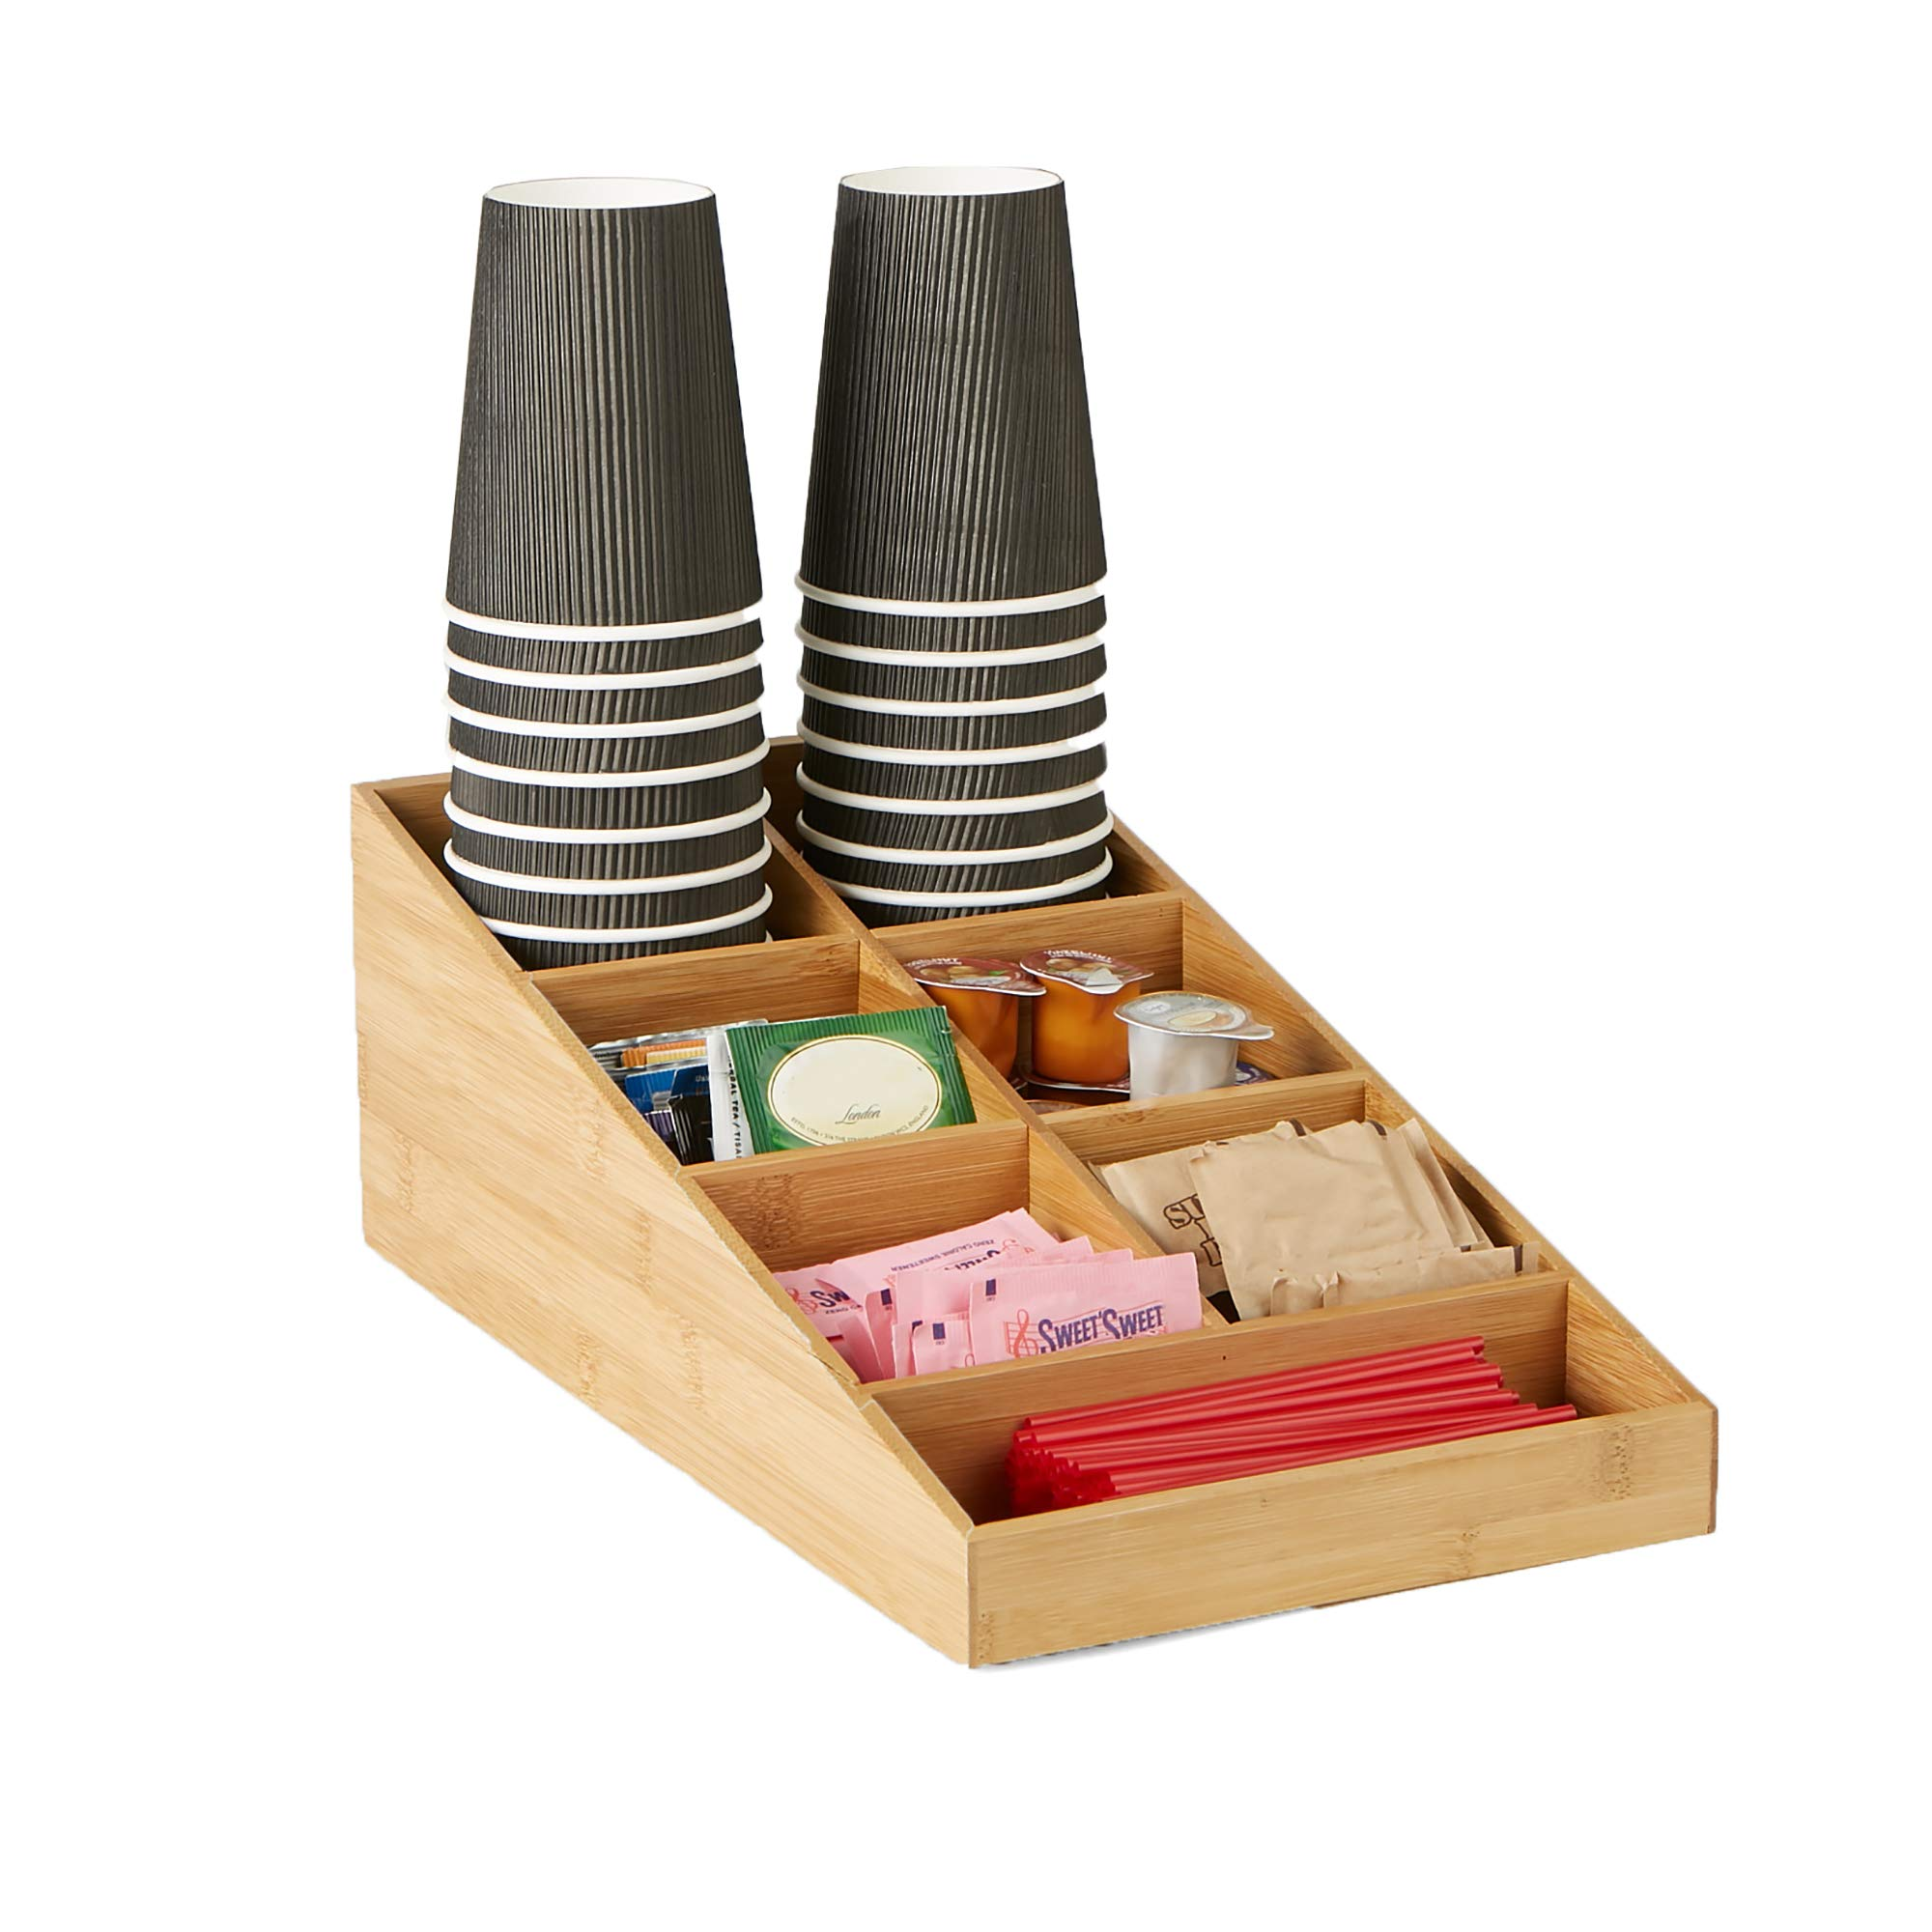 Mind Reader Coffee Condiment and Accessories Organizer, 7 Compartments, Brown by Mind Reader (Image #1)